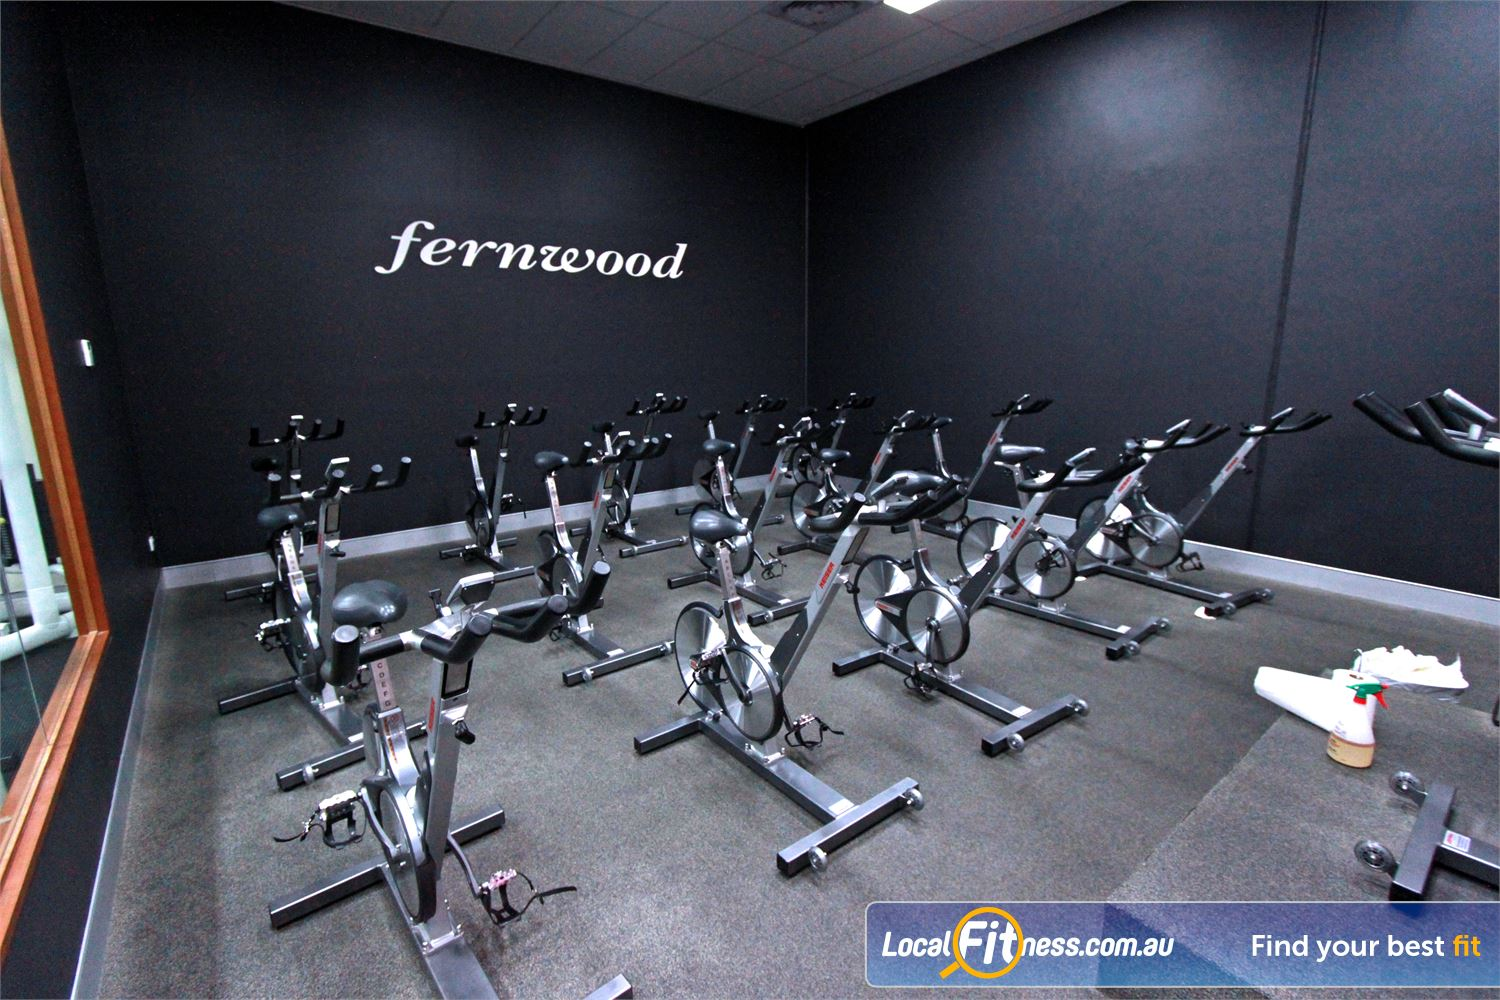 Fernwood Fitness Near Knoxfield Dedicated Ferntree Gully spin cycle studio.